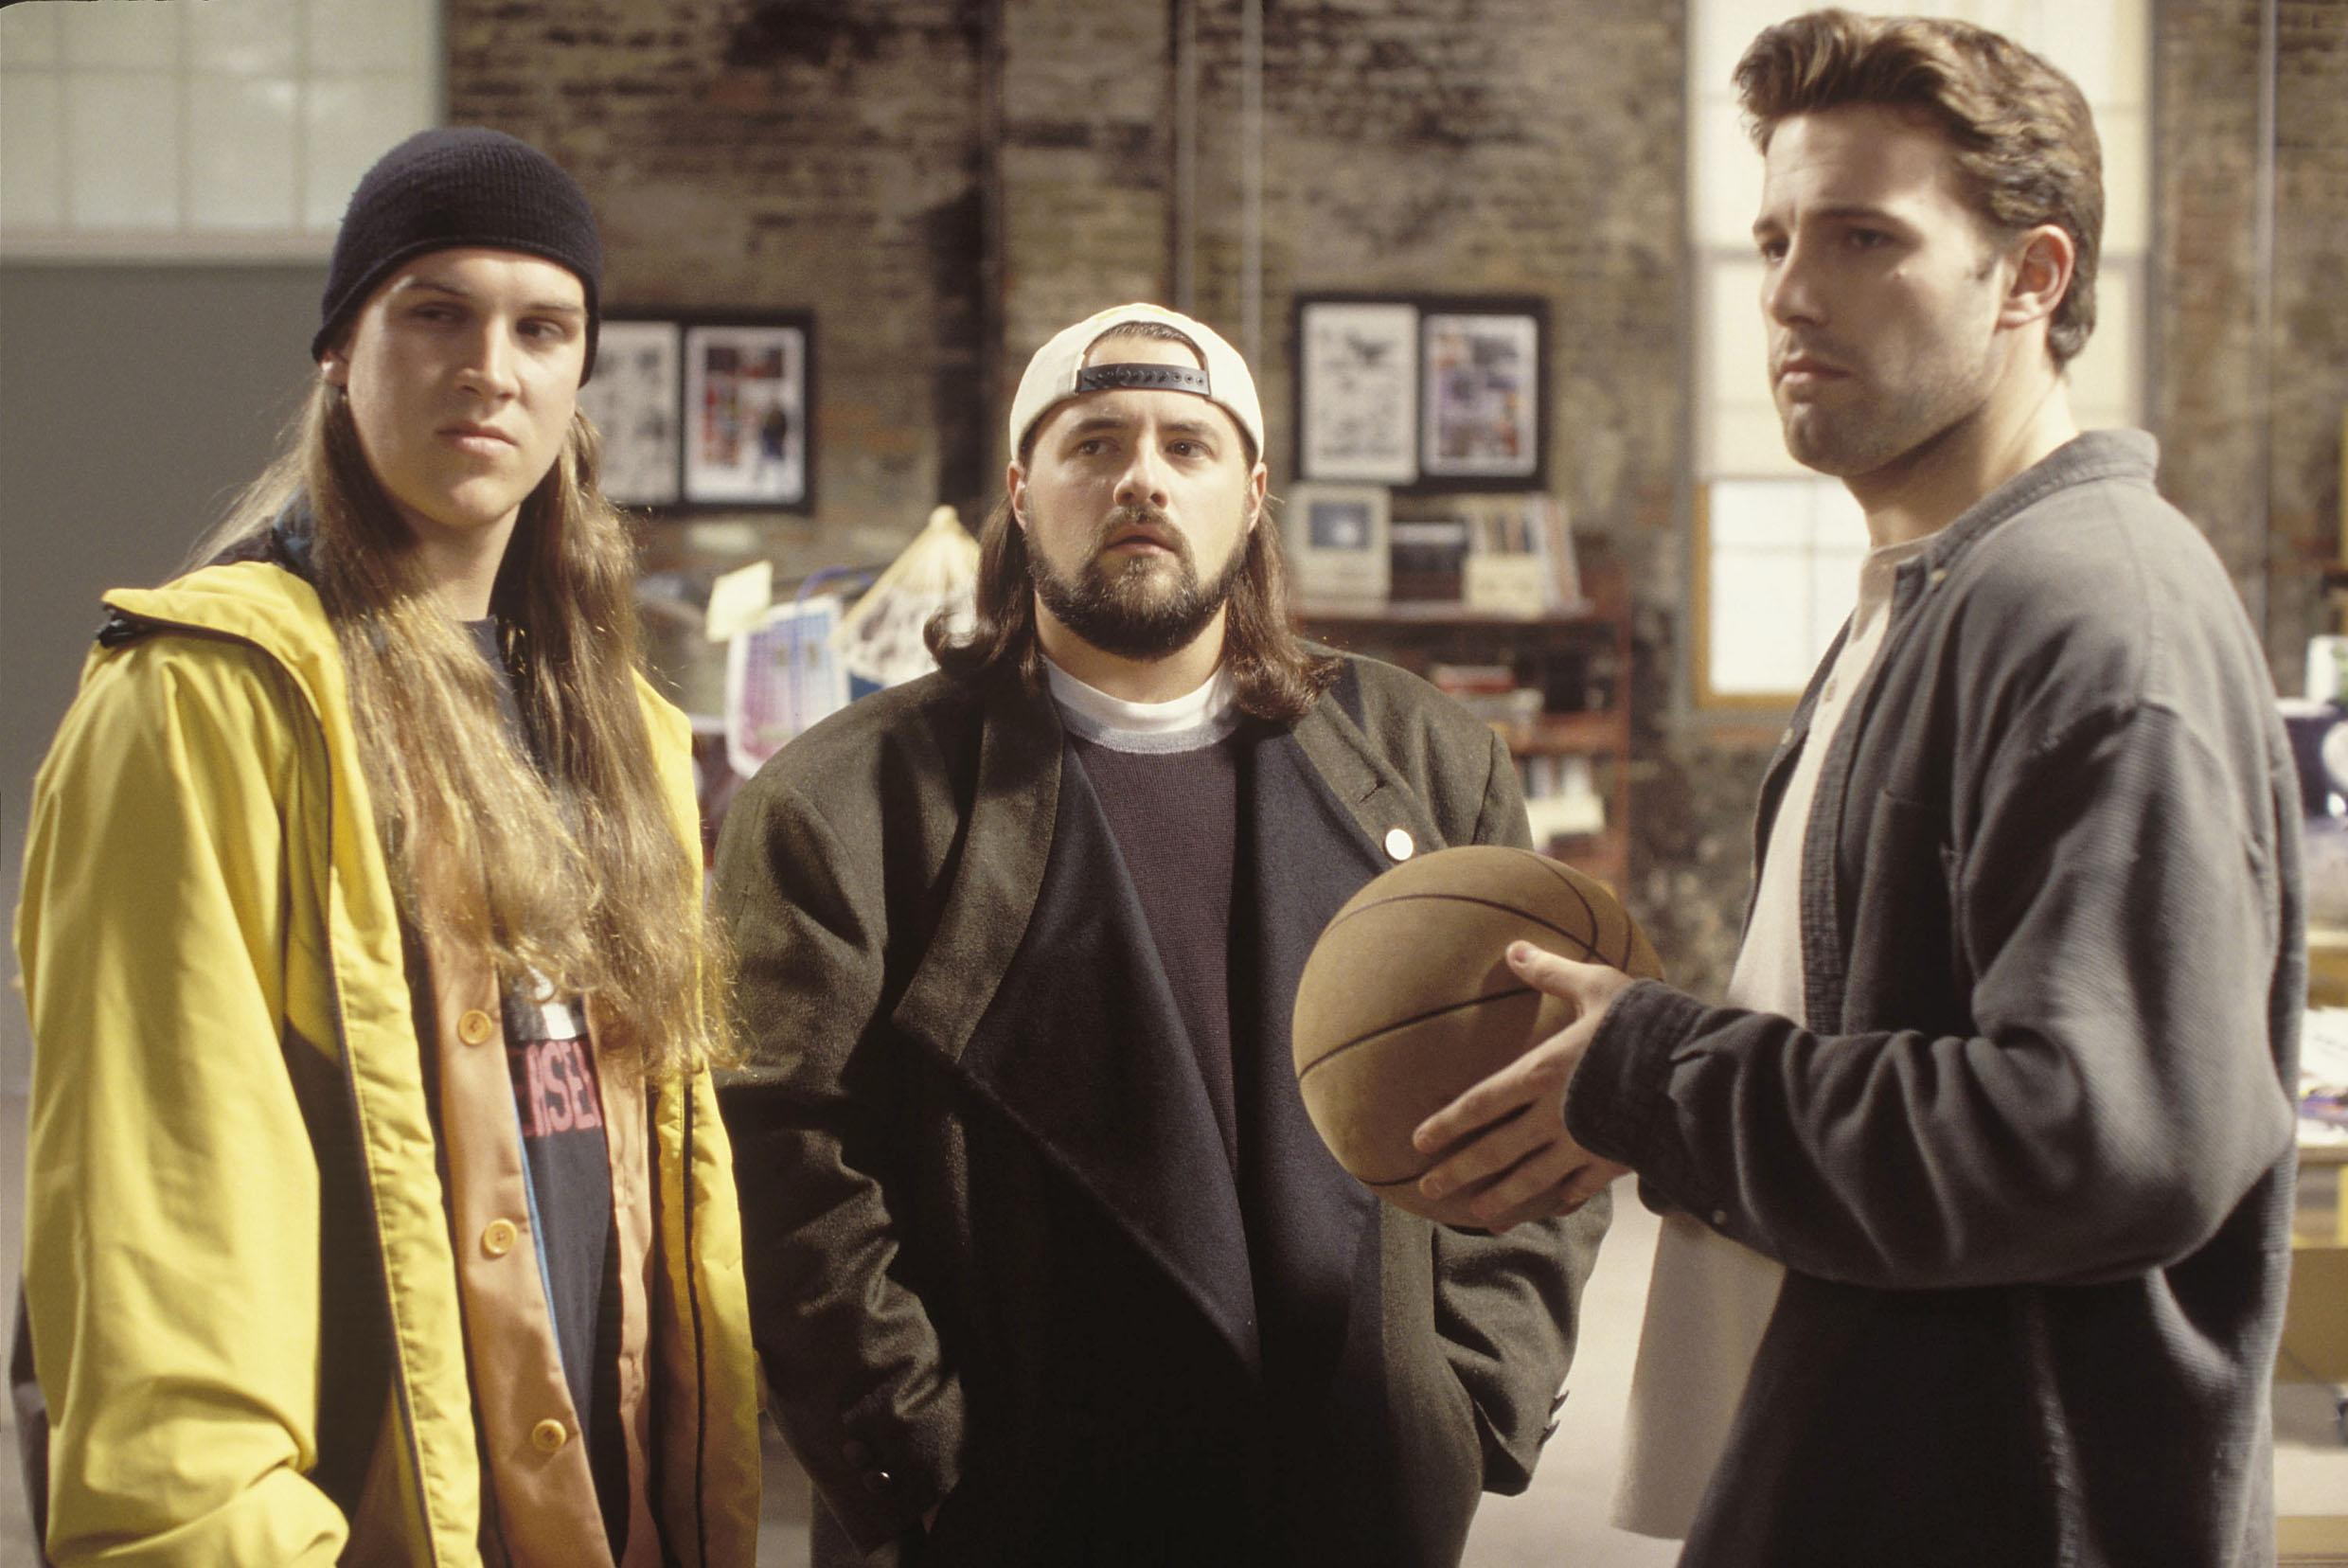 Jay and Silent Bob Reboot trailer: Matt Damon and Ben Affleck among comedy's guest stars